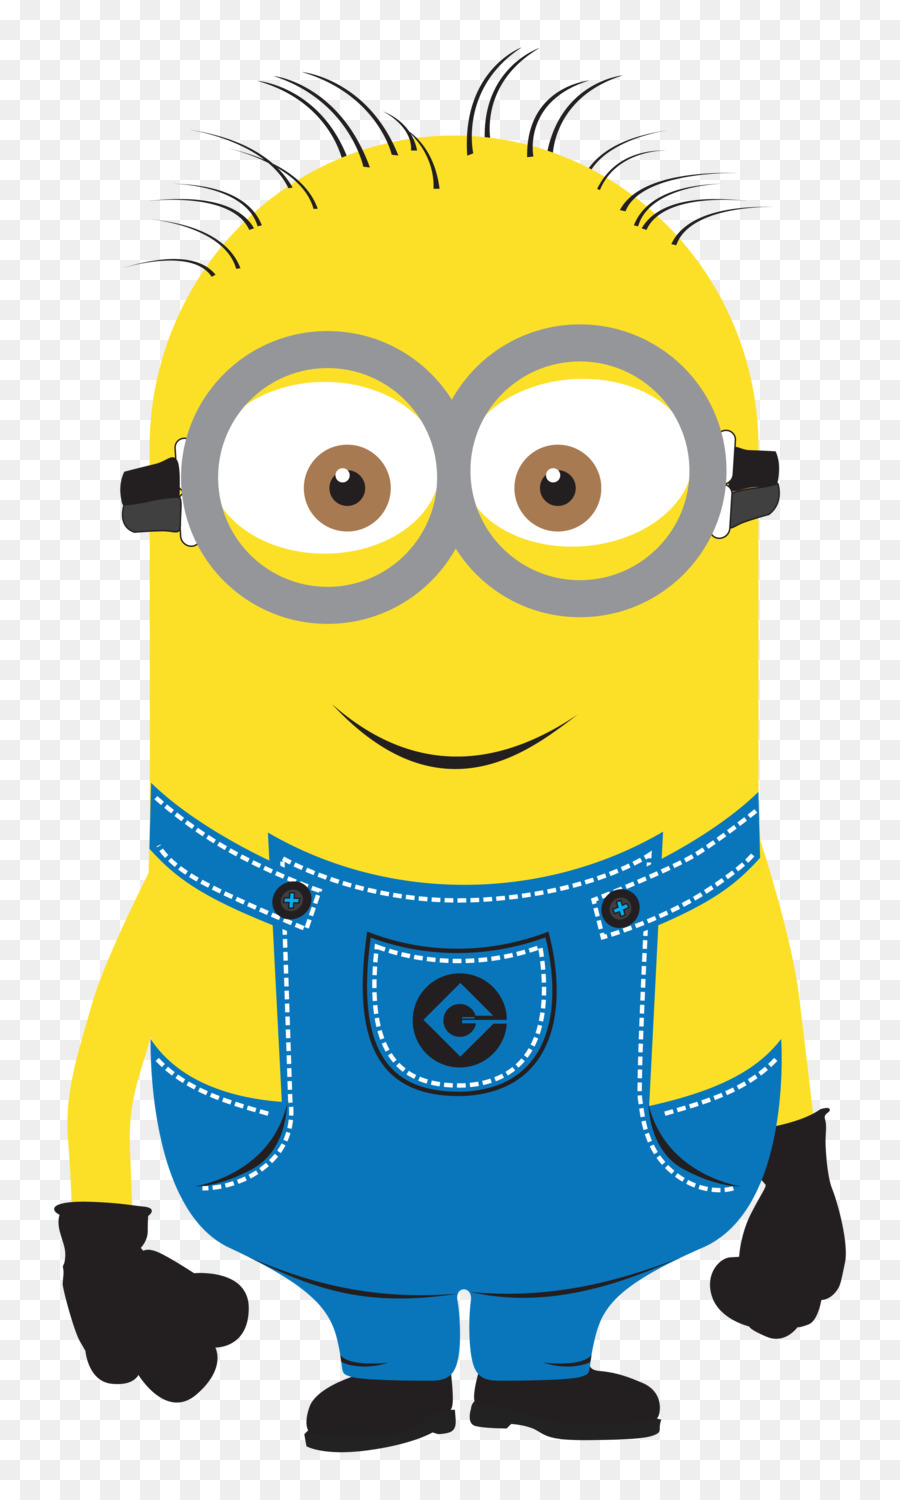 900x1500 Minions Despicable Me Free Content Scalable Vector Graphics Clip